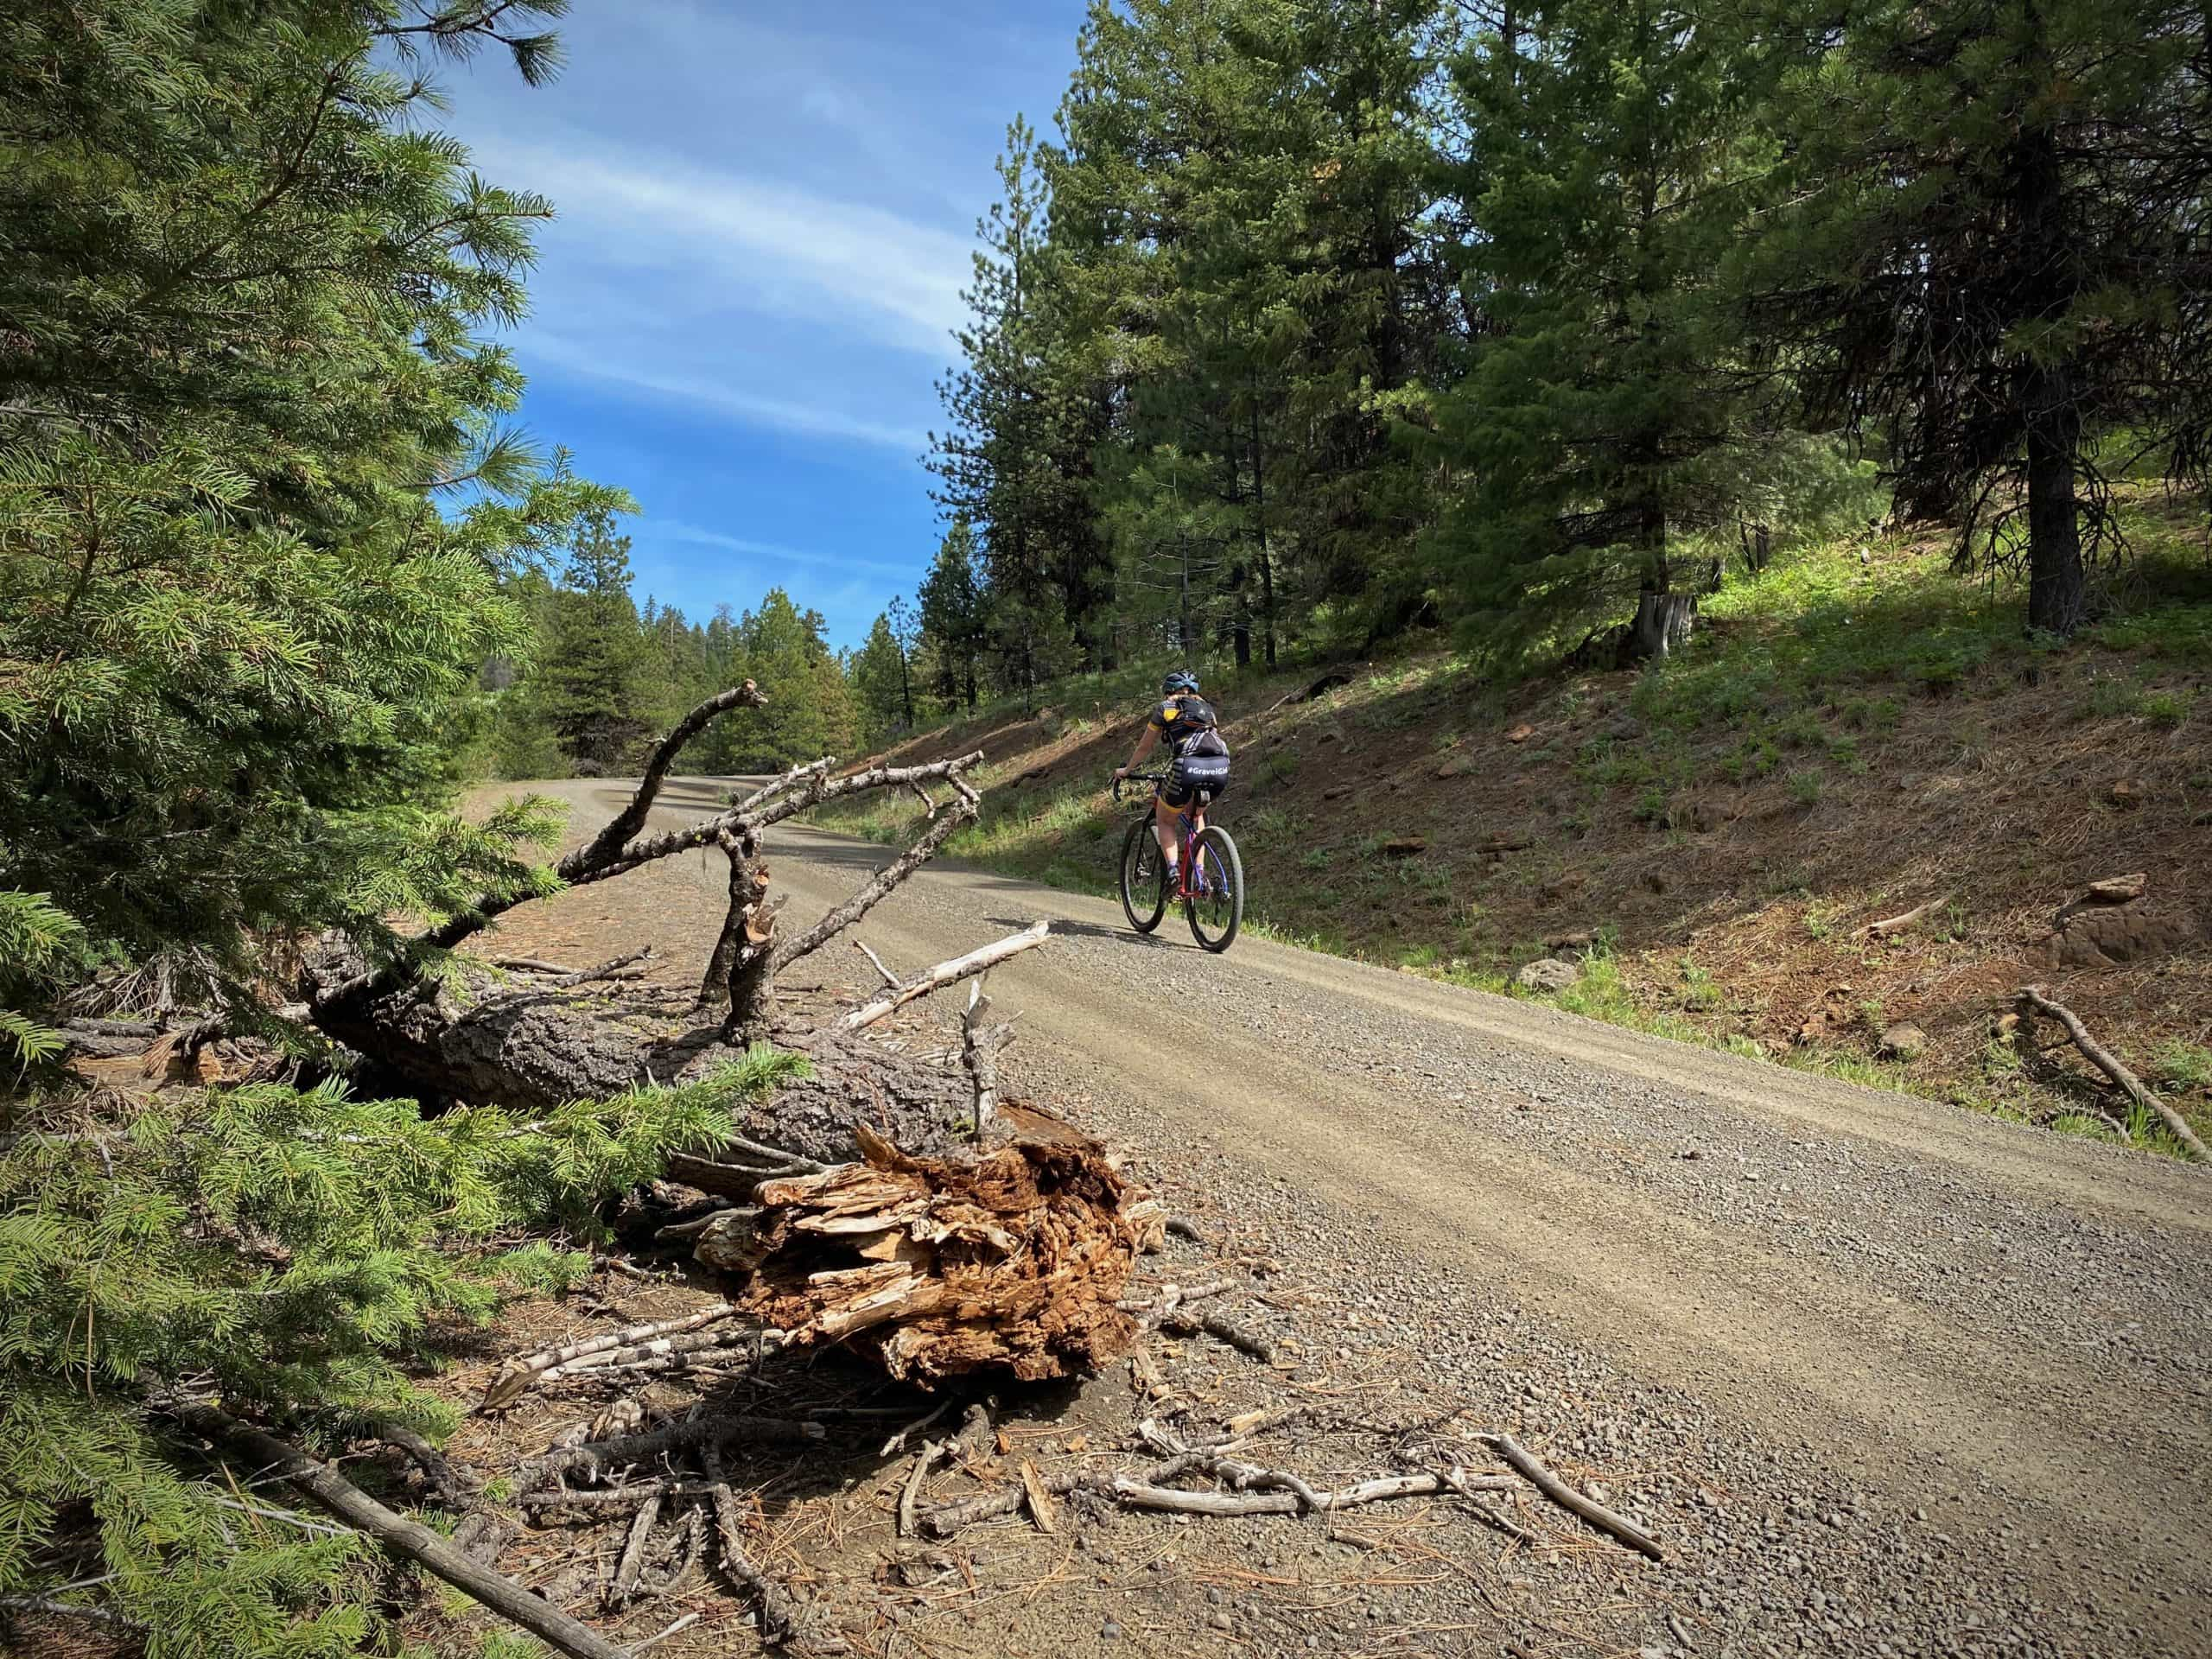 Gravel cyclist on unpaved forest service road in the Ochoco mountains in Central Oregon.